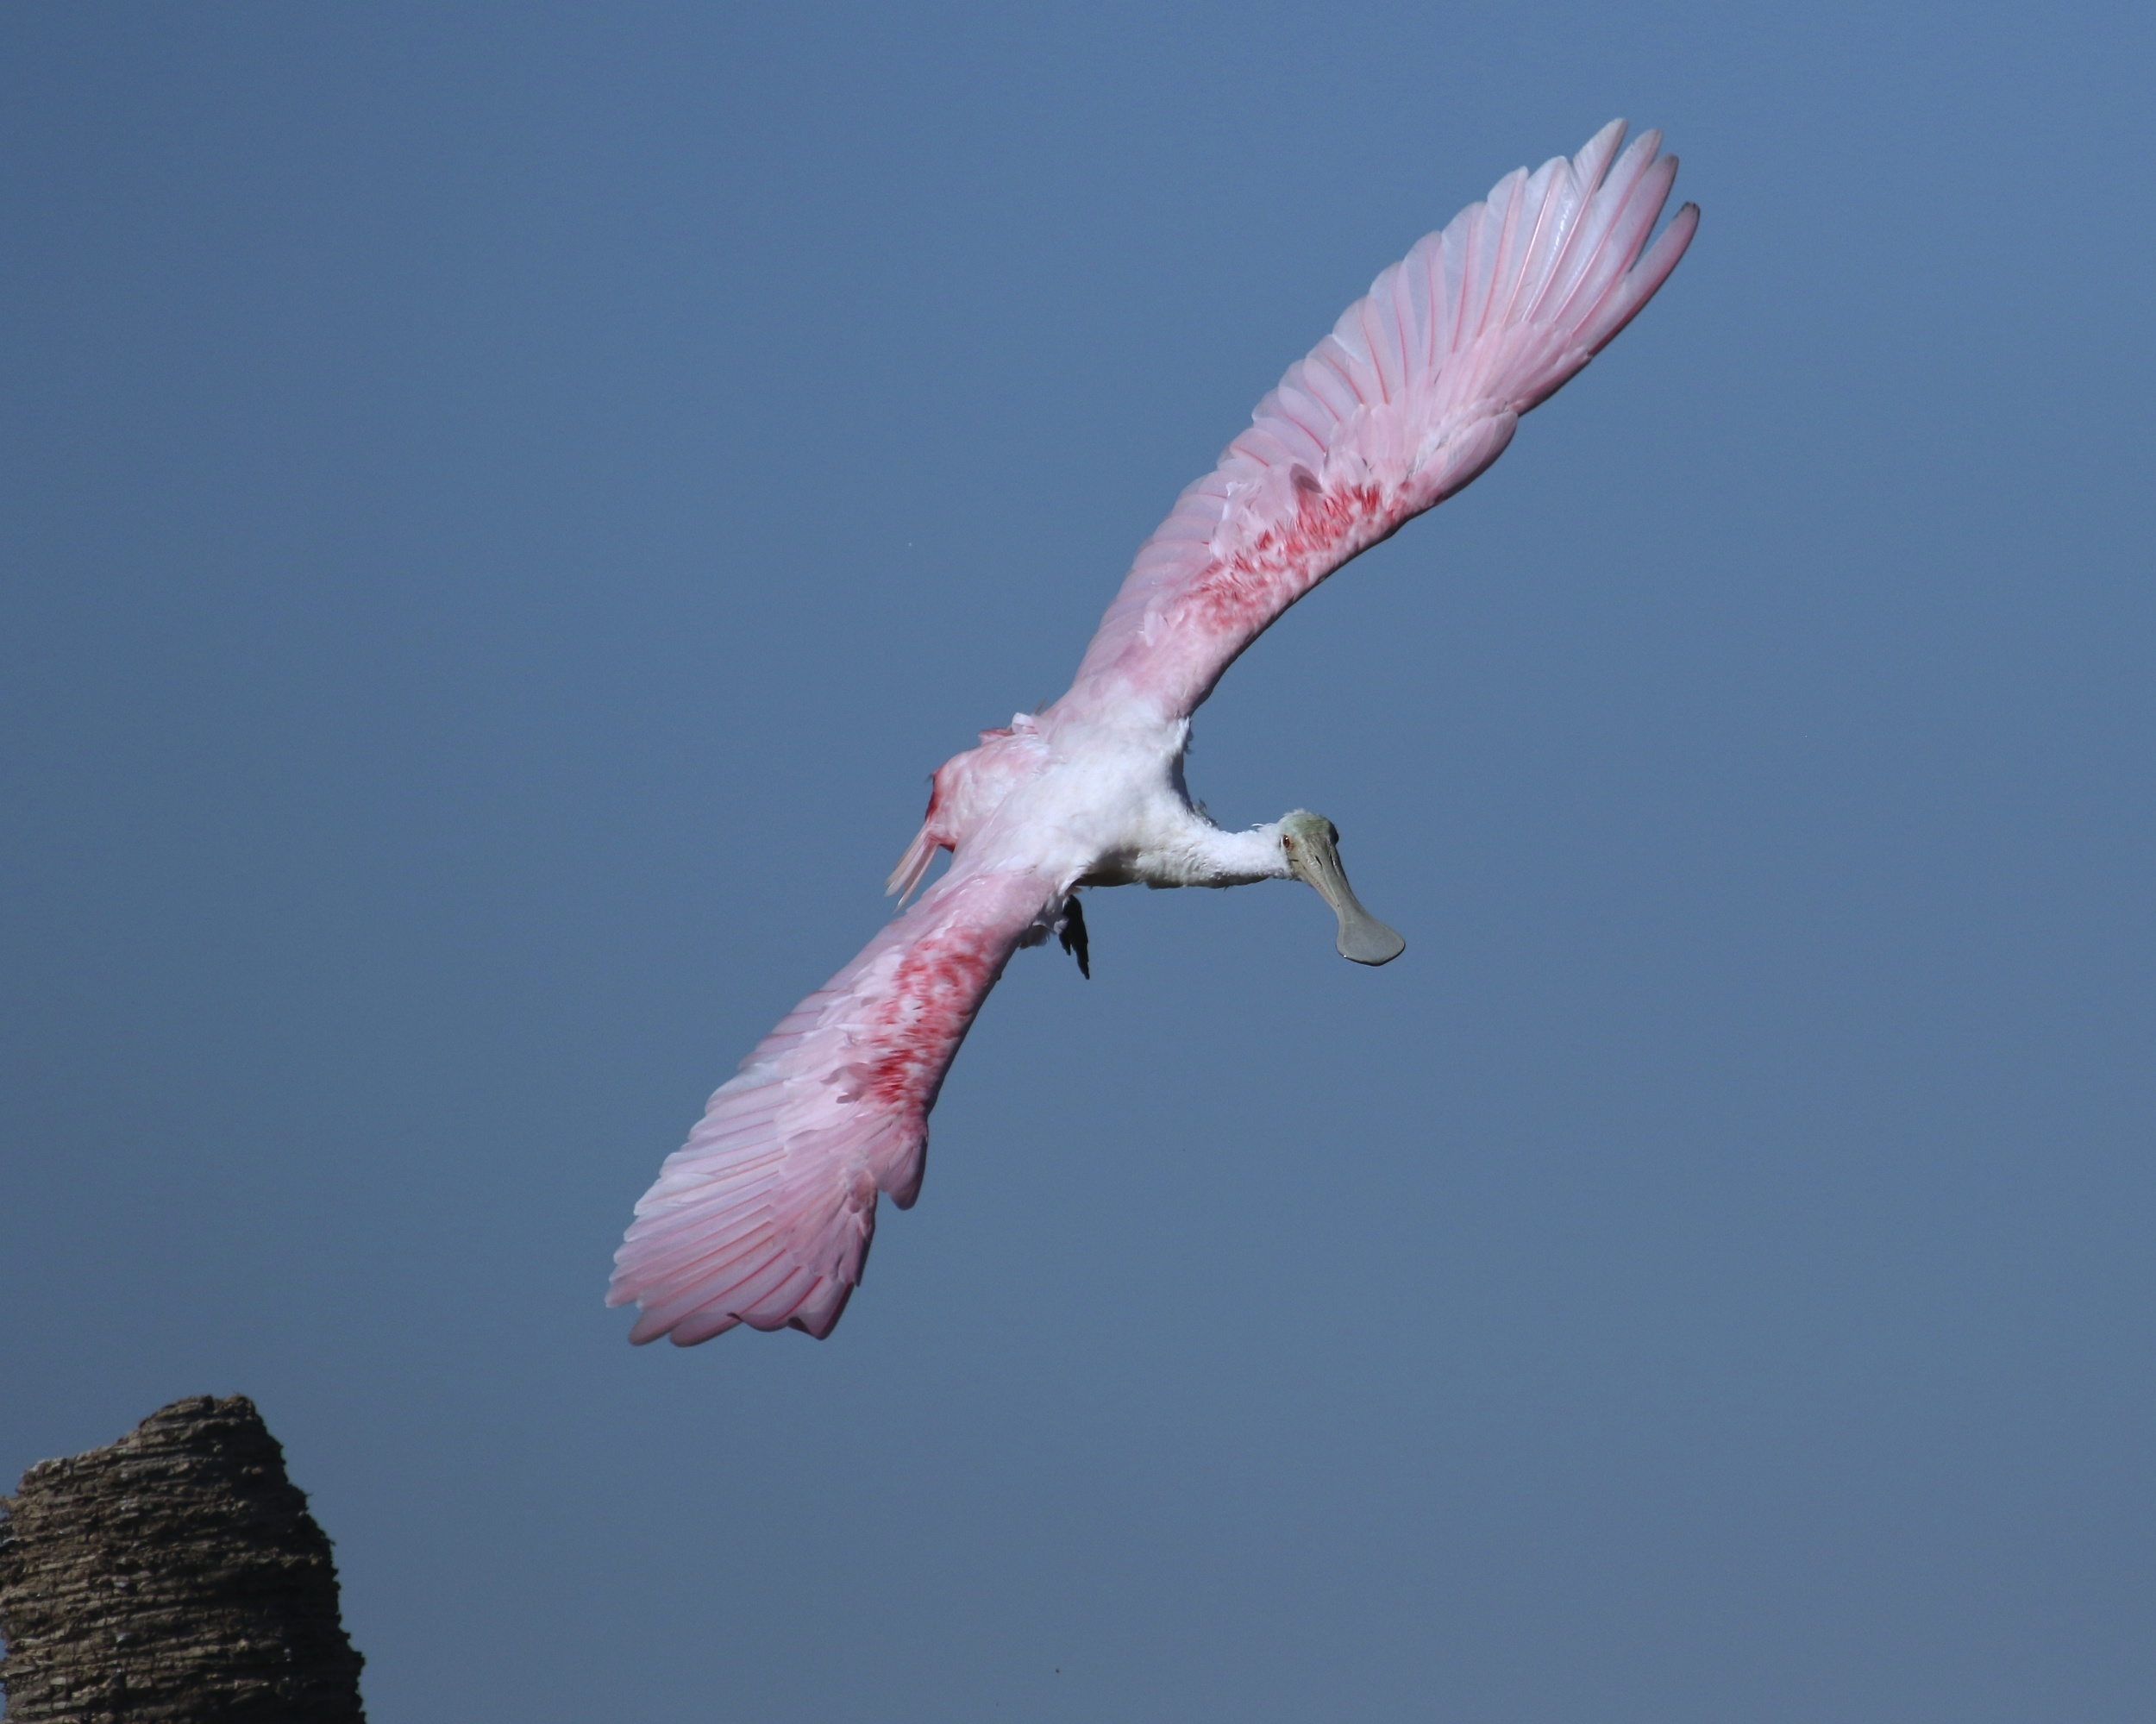 Spreading those graceful pink wings...